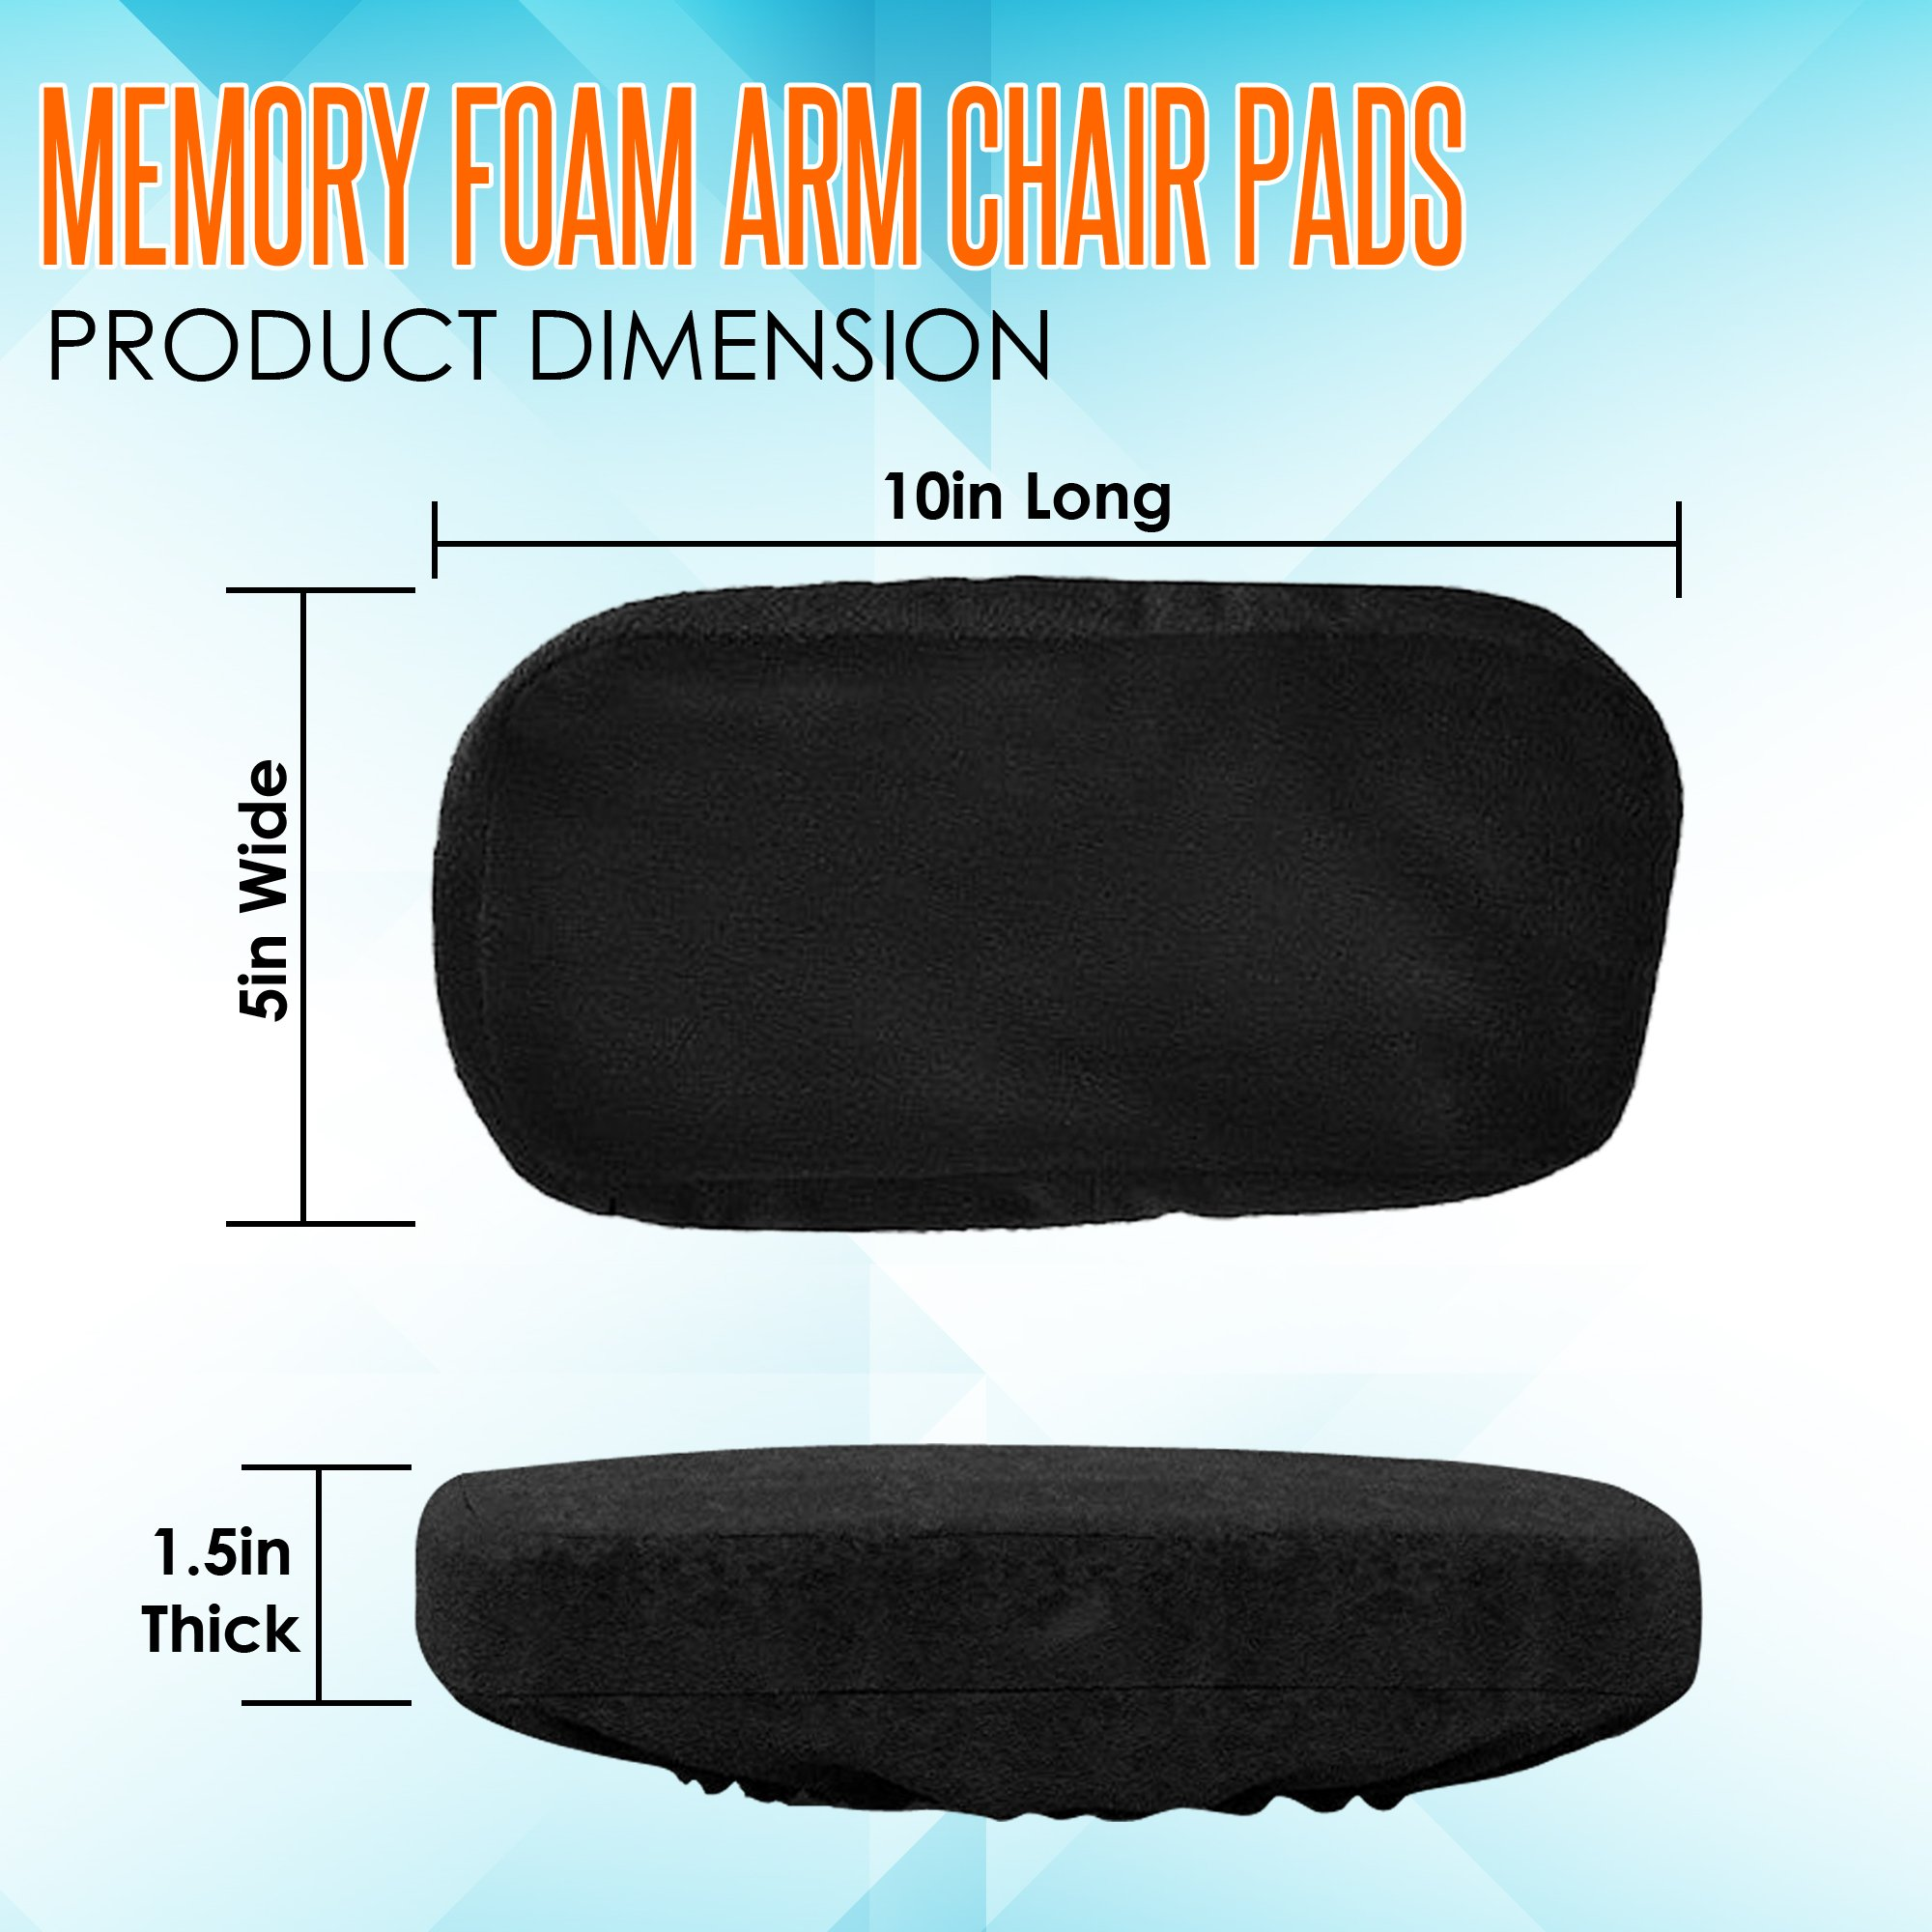 Memory Foam Arm Chair Pads for Home and Office - Perfect Density Cushions - Premium Quality - Washable Covers - Therapeutic Armrest Support - Extra Thick - Elbow & Relief - Universal Fit (Set of 2) by Grand House (Image #7)